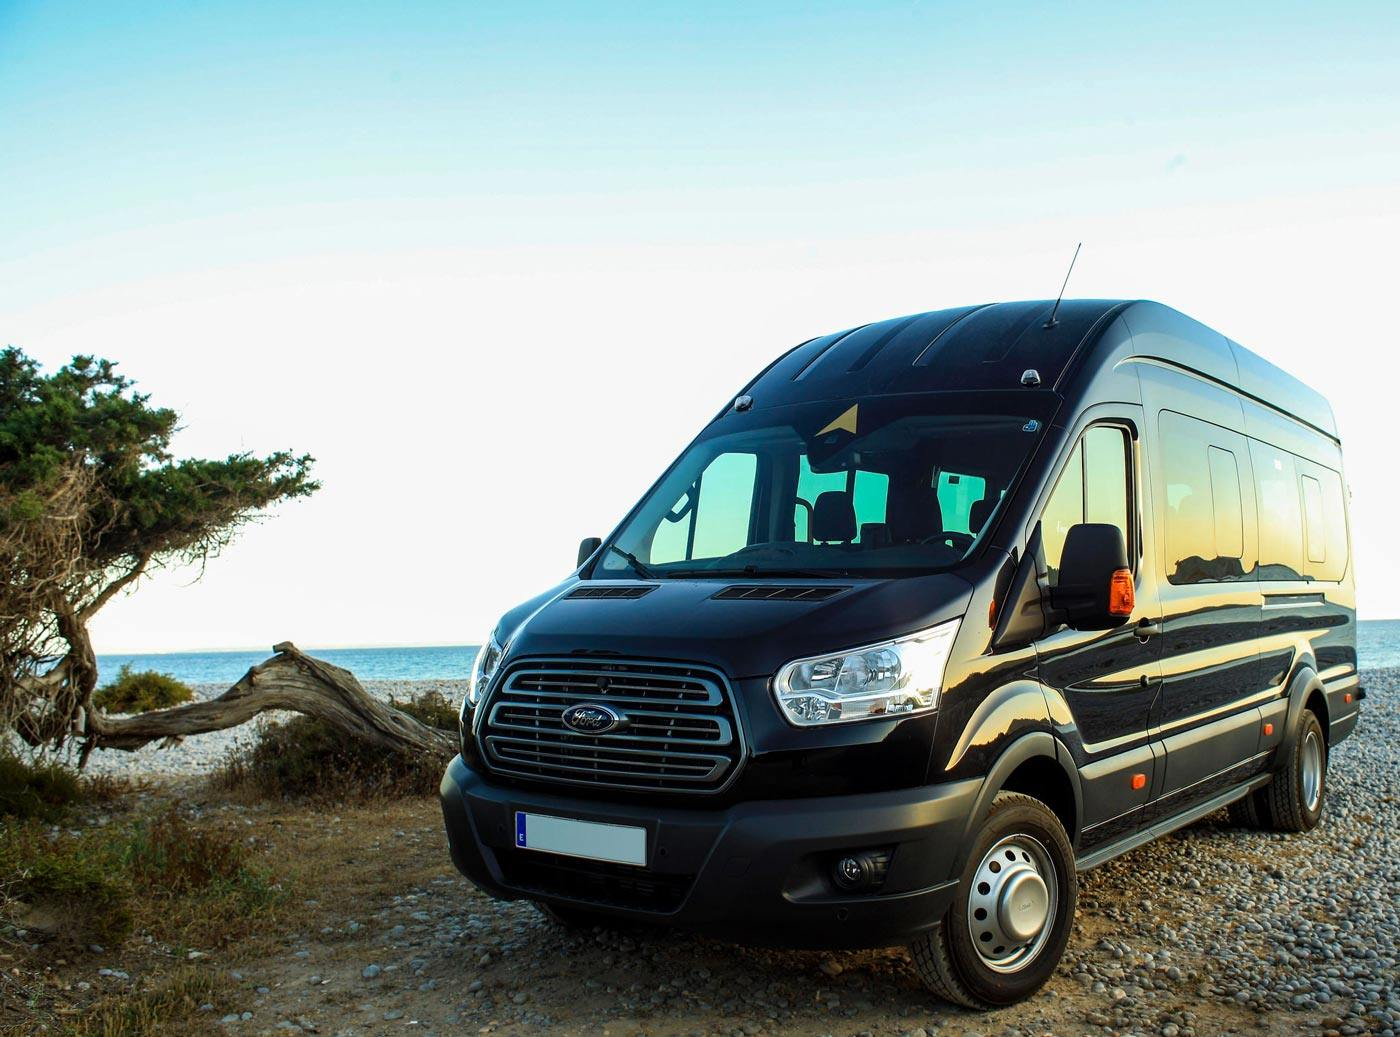 Dominoes hotel private corfu airport shuttle, transfer from corfu airport by dominoes hotel transfer